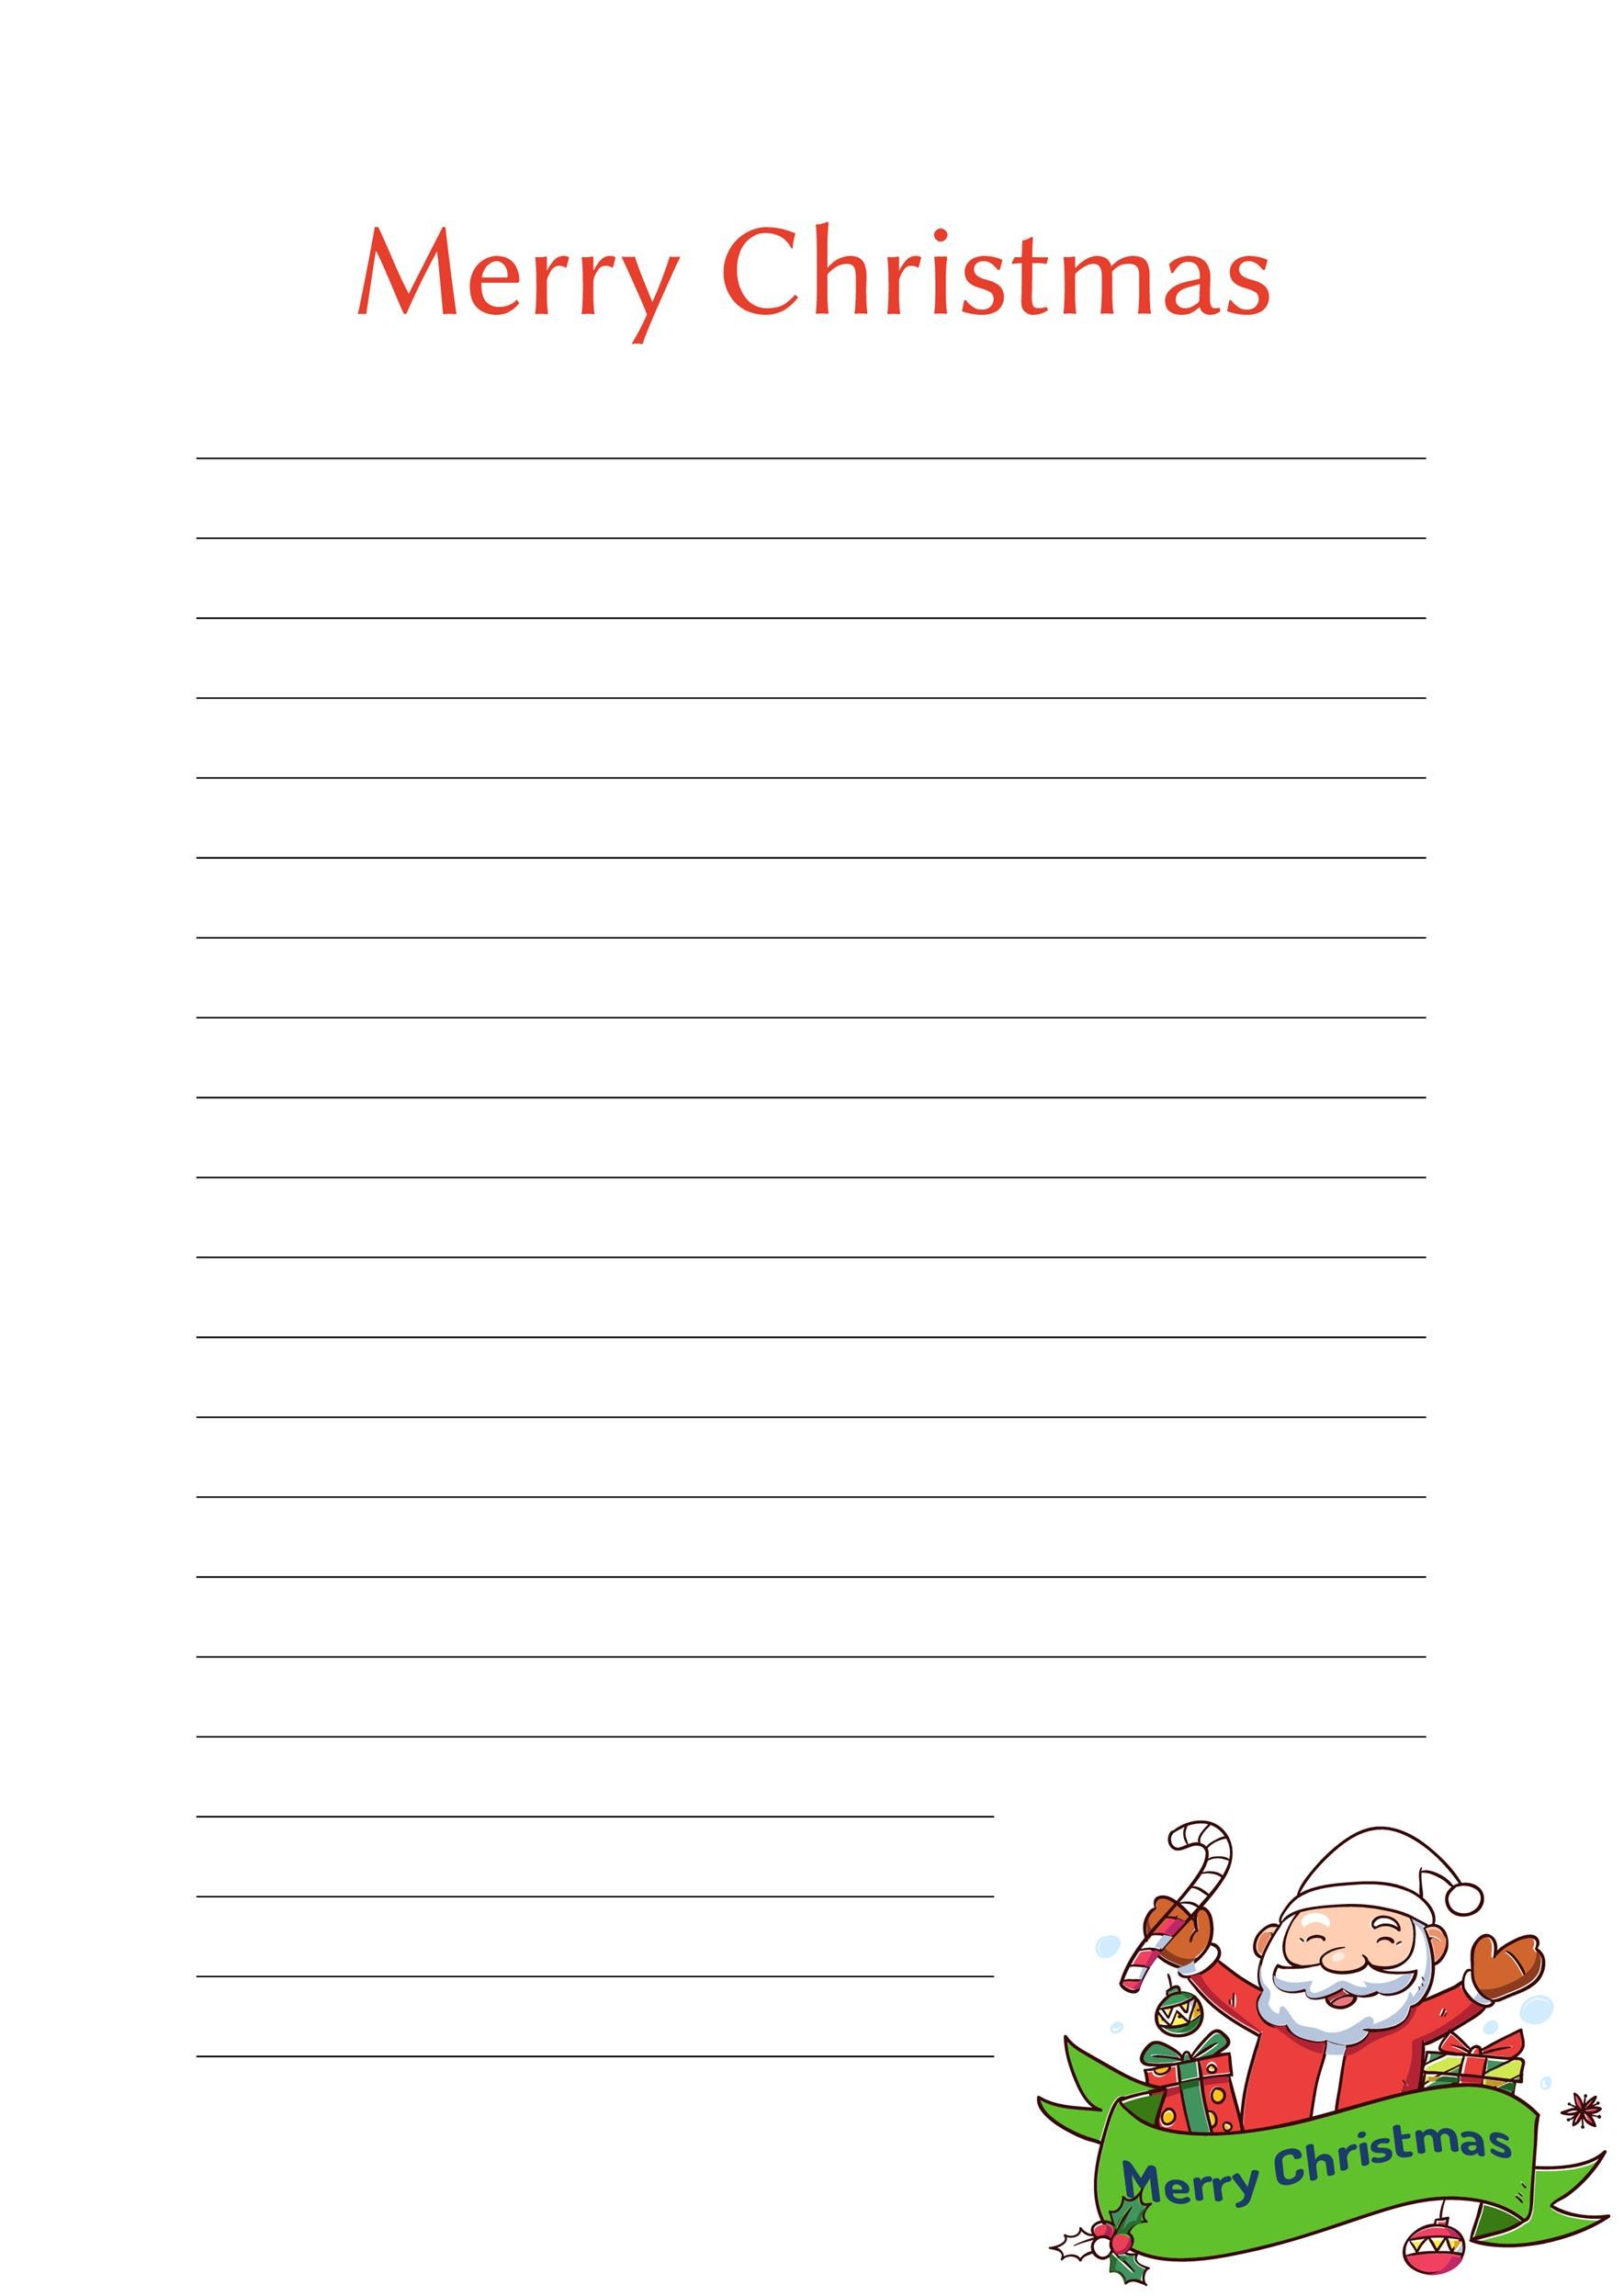 Free lined paper template 15